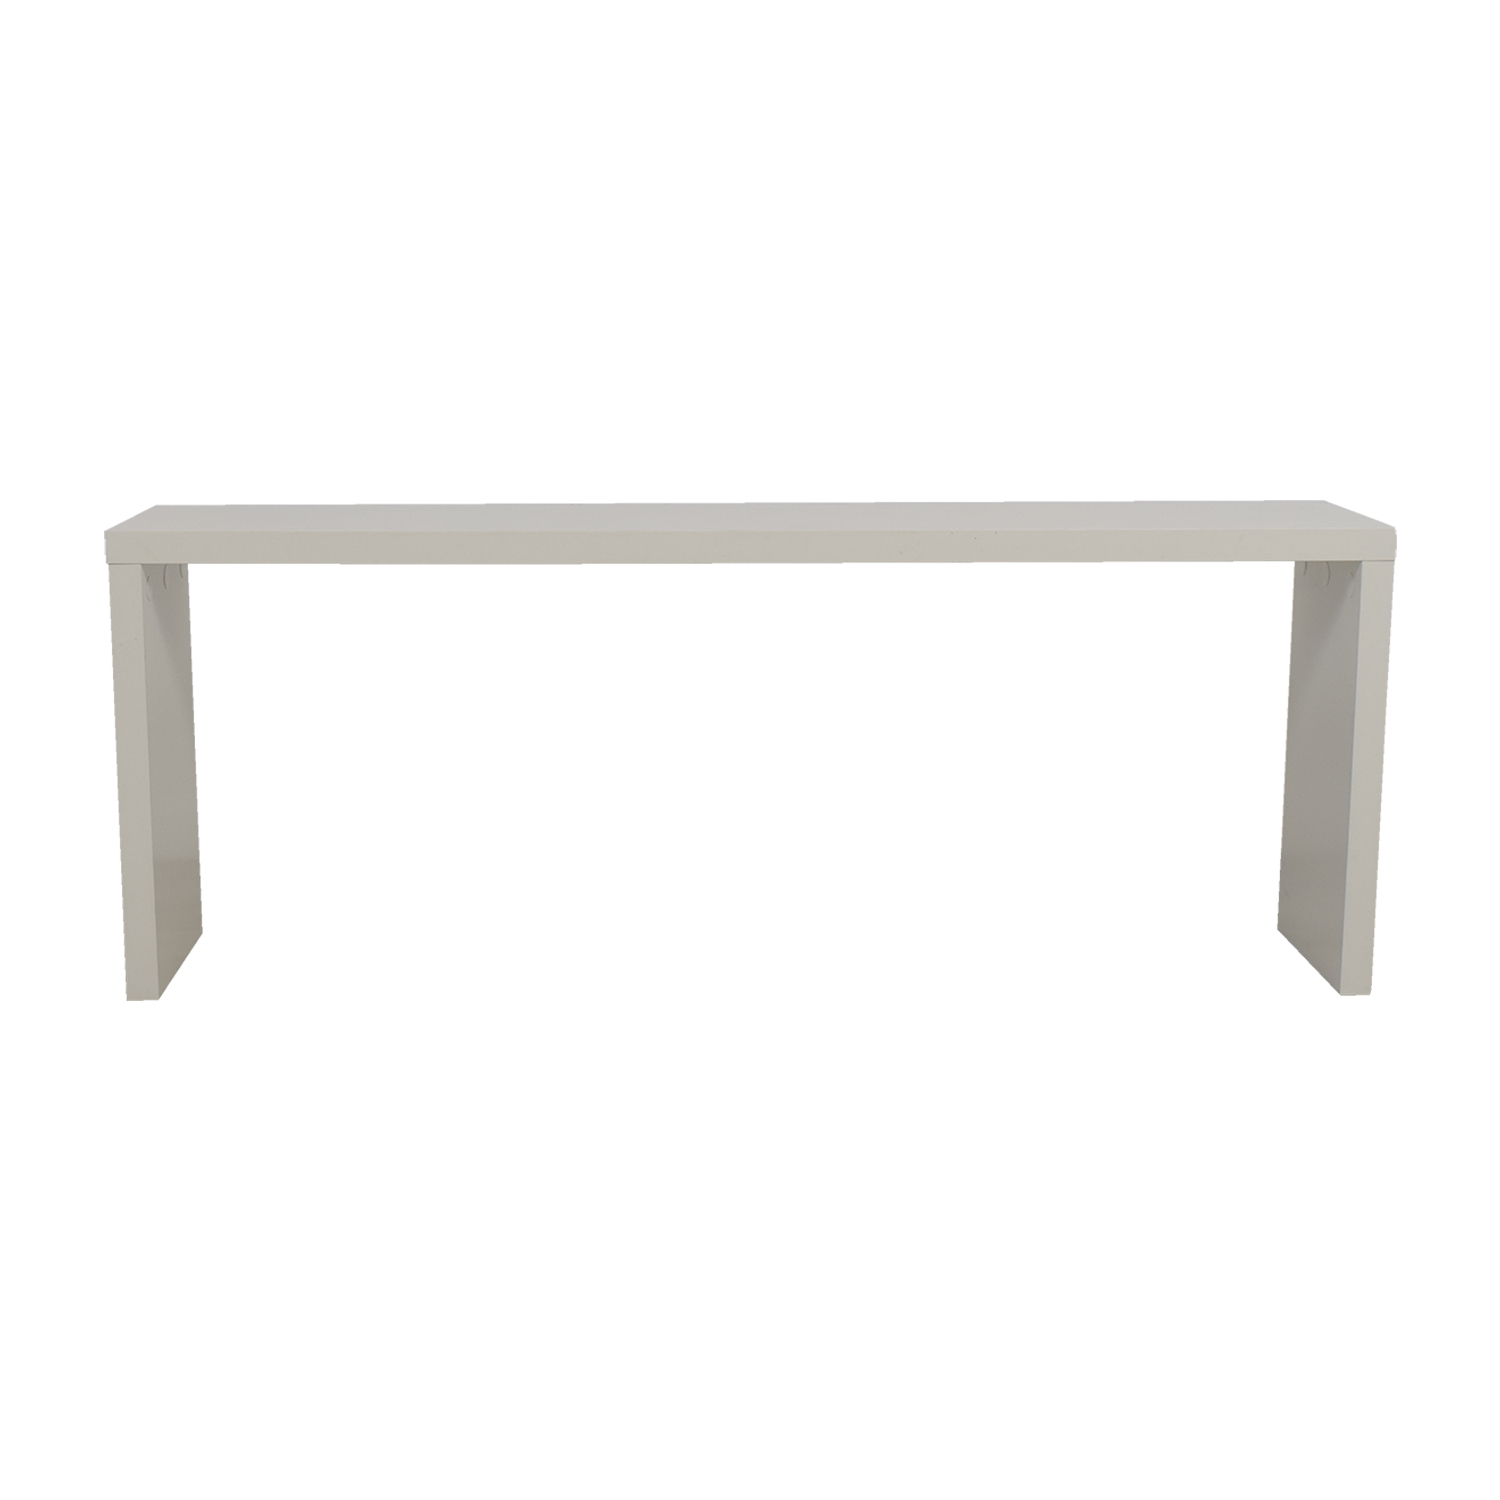 shop Fells White Narrow Console Table Fells